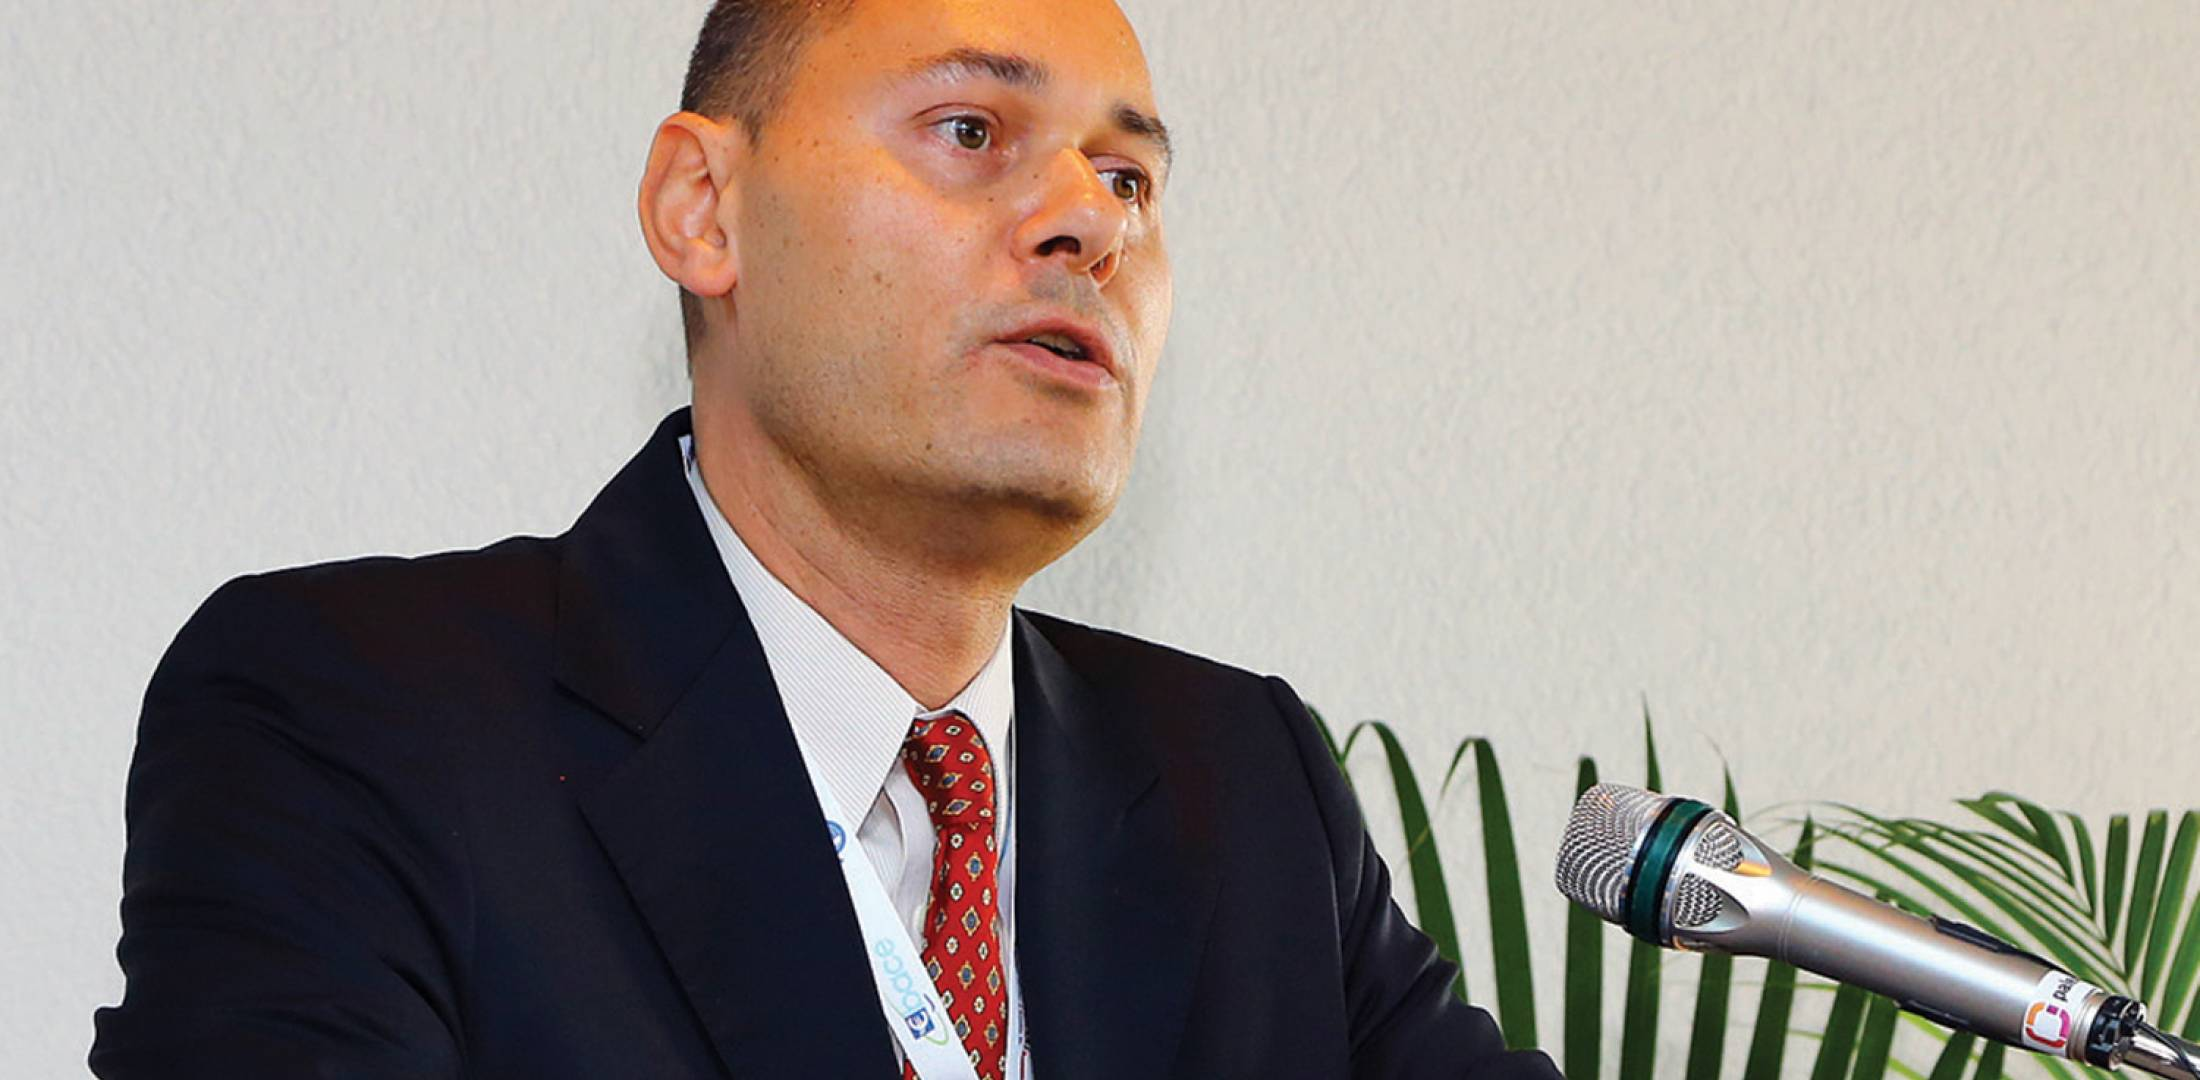 EBAA CEO Fabio Gamba (Photo: David McIntosh)